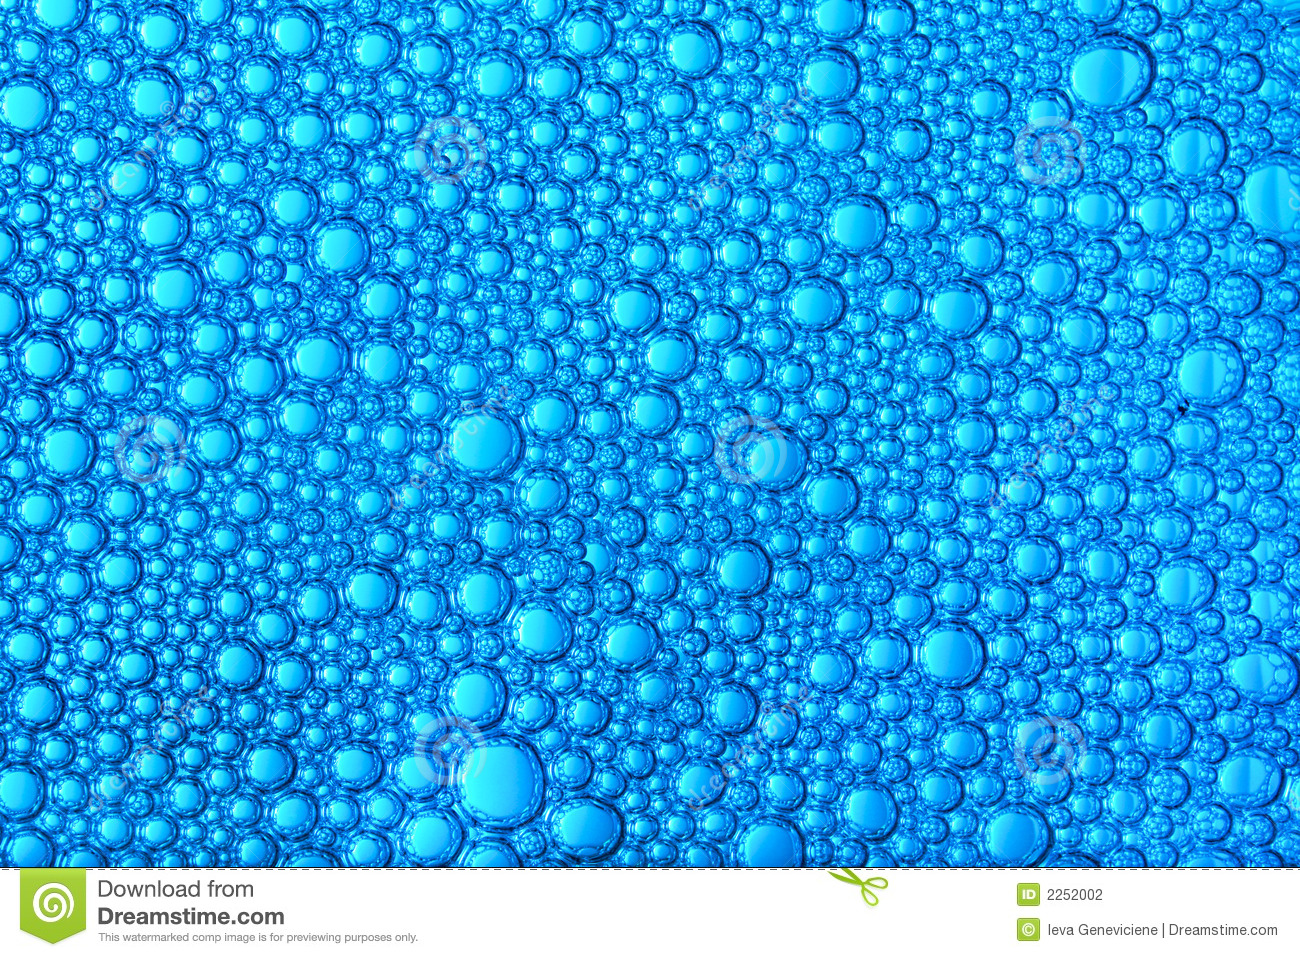 Background of small blue bubbles forming a beautiful ornament.